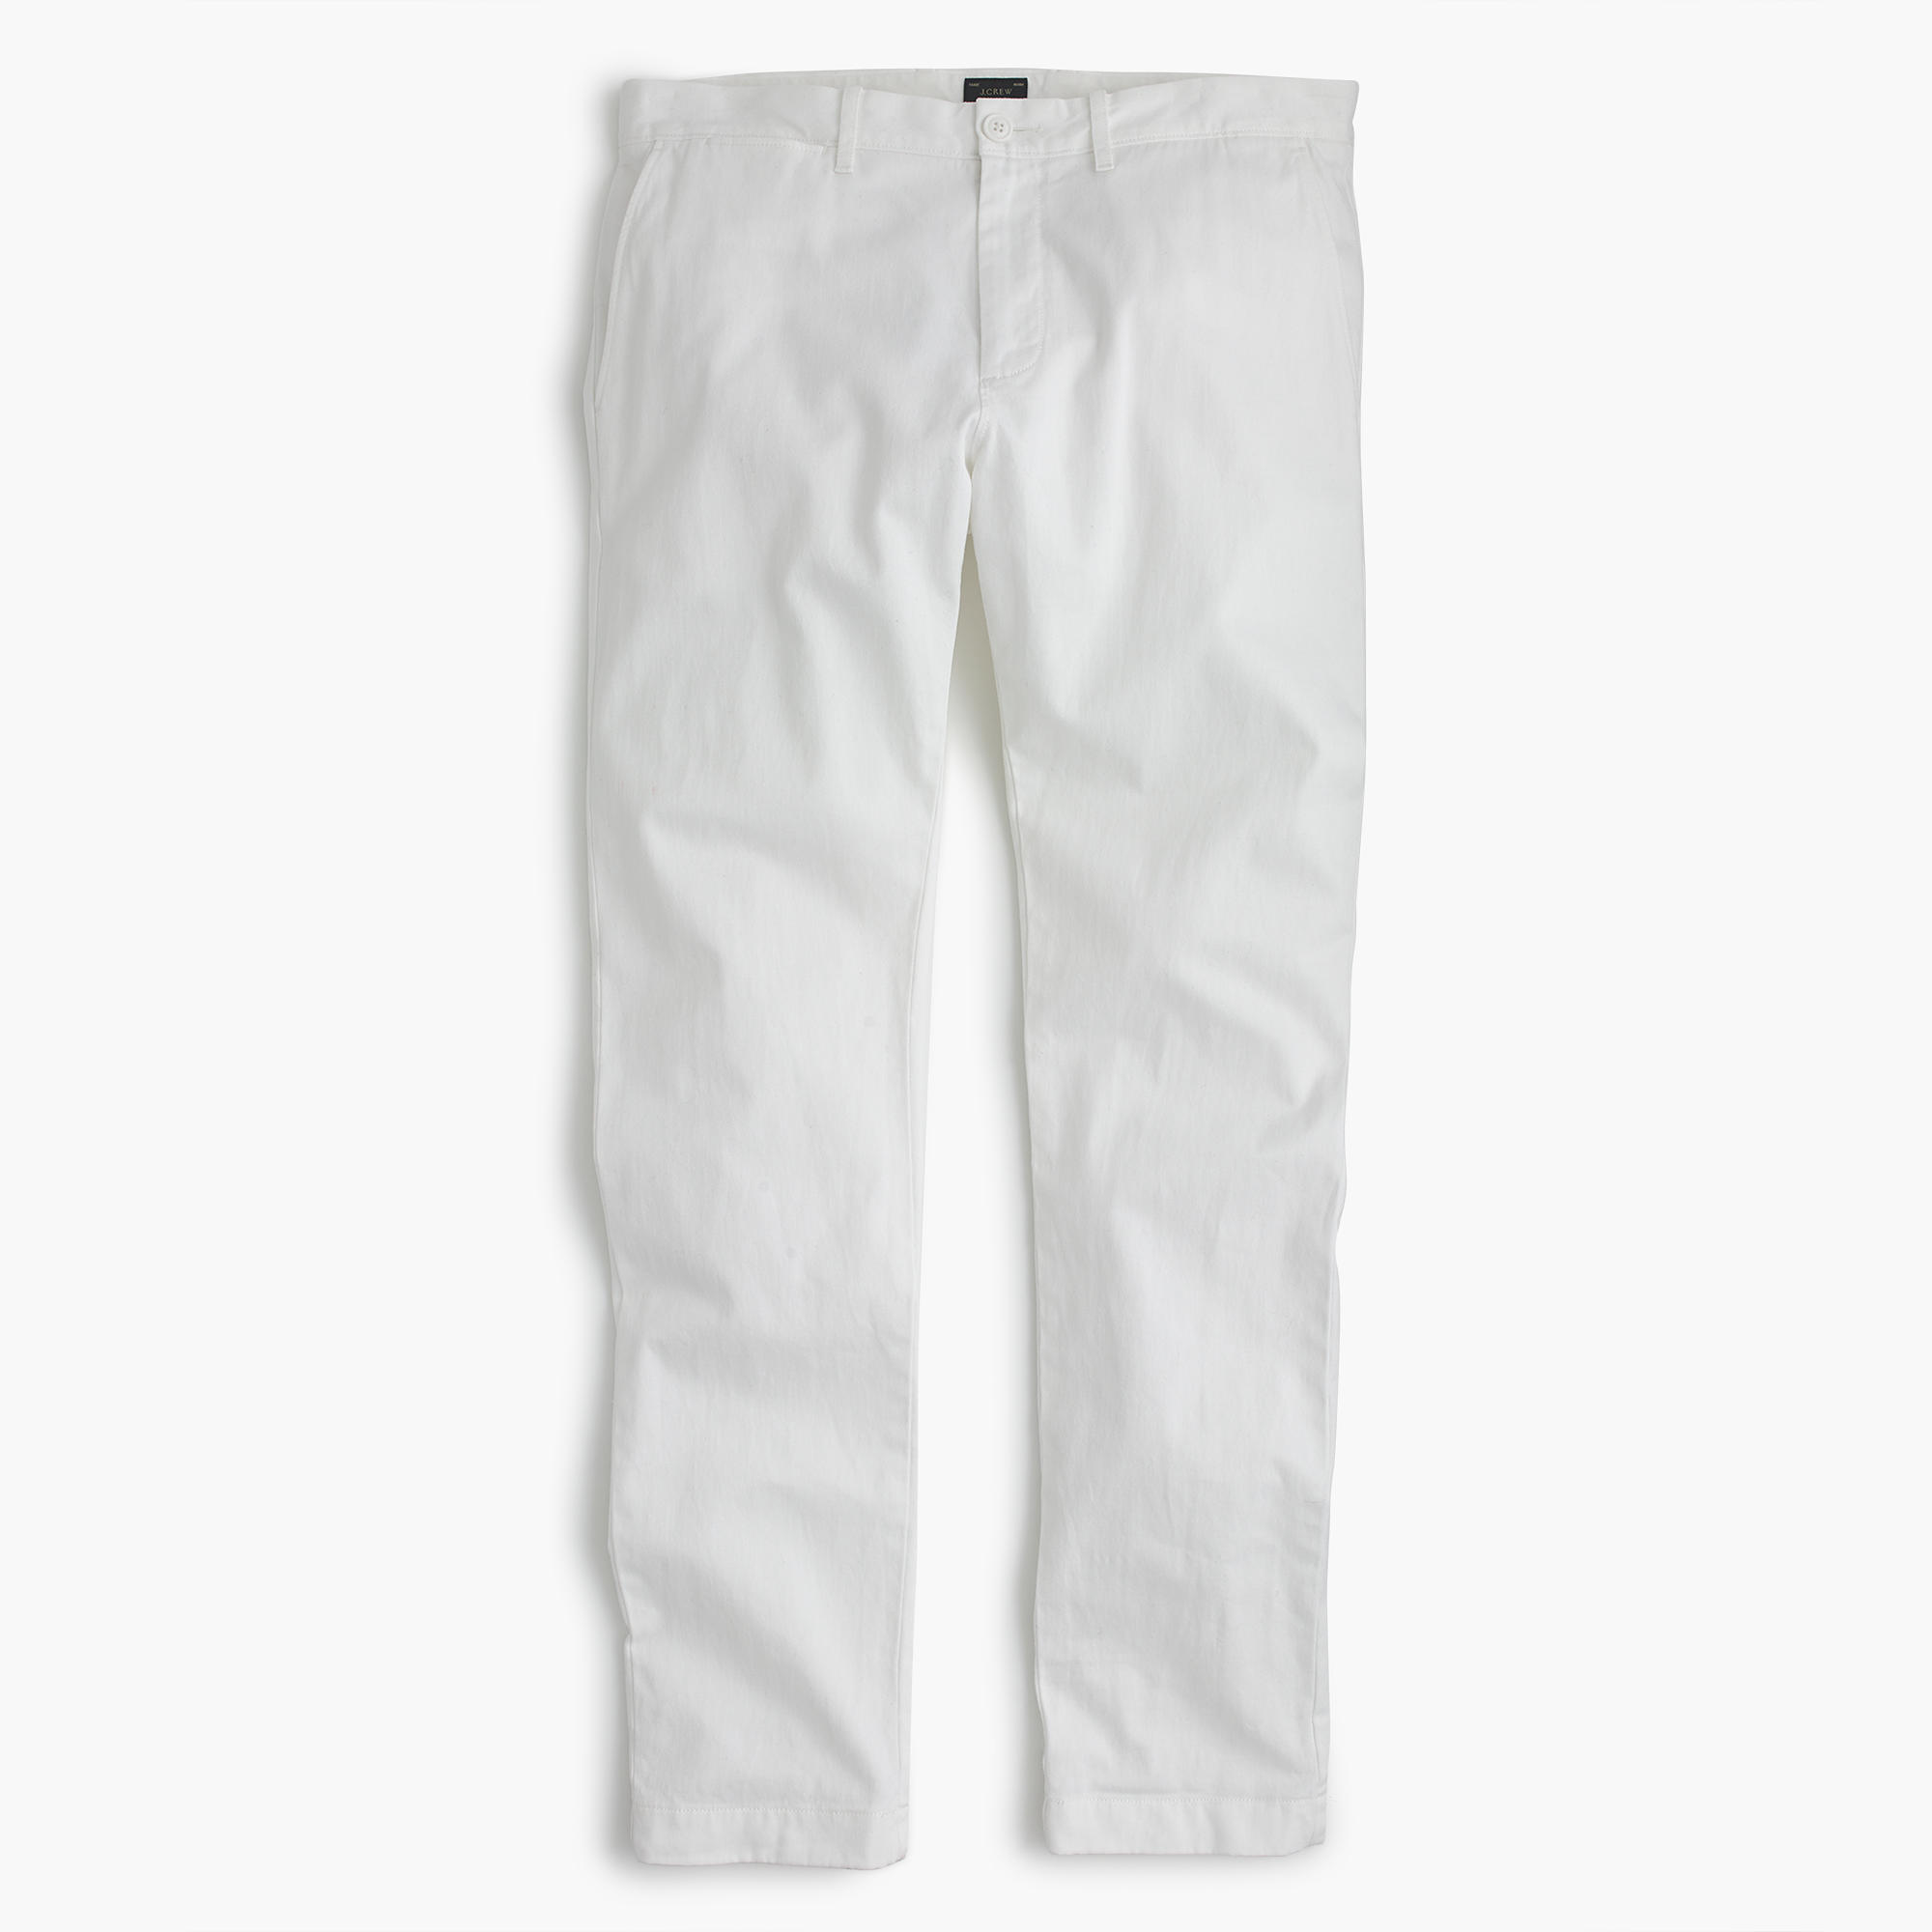 Stretch Chino In 484 Fit : Men's Chinos | J.Crew